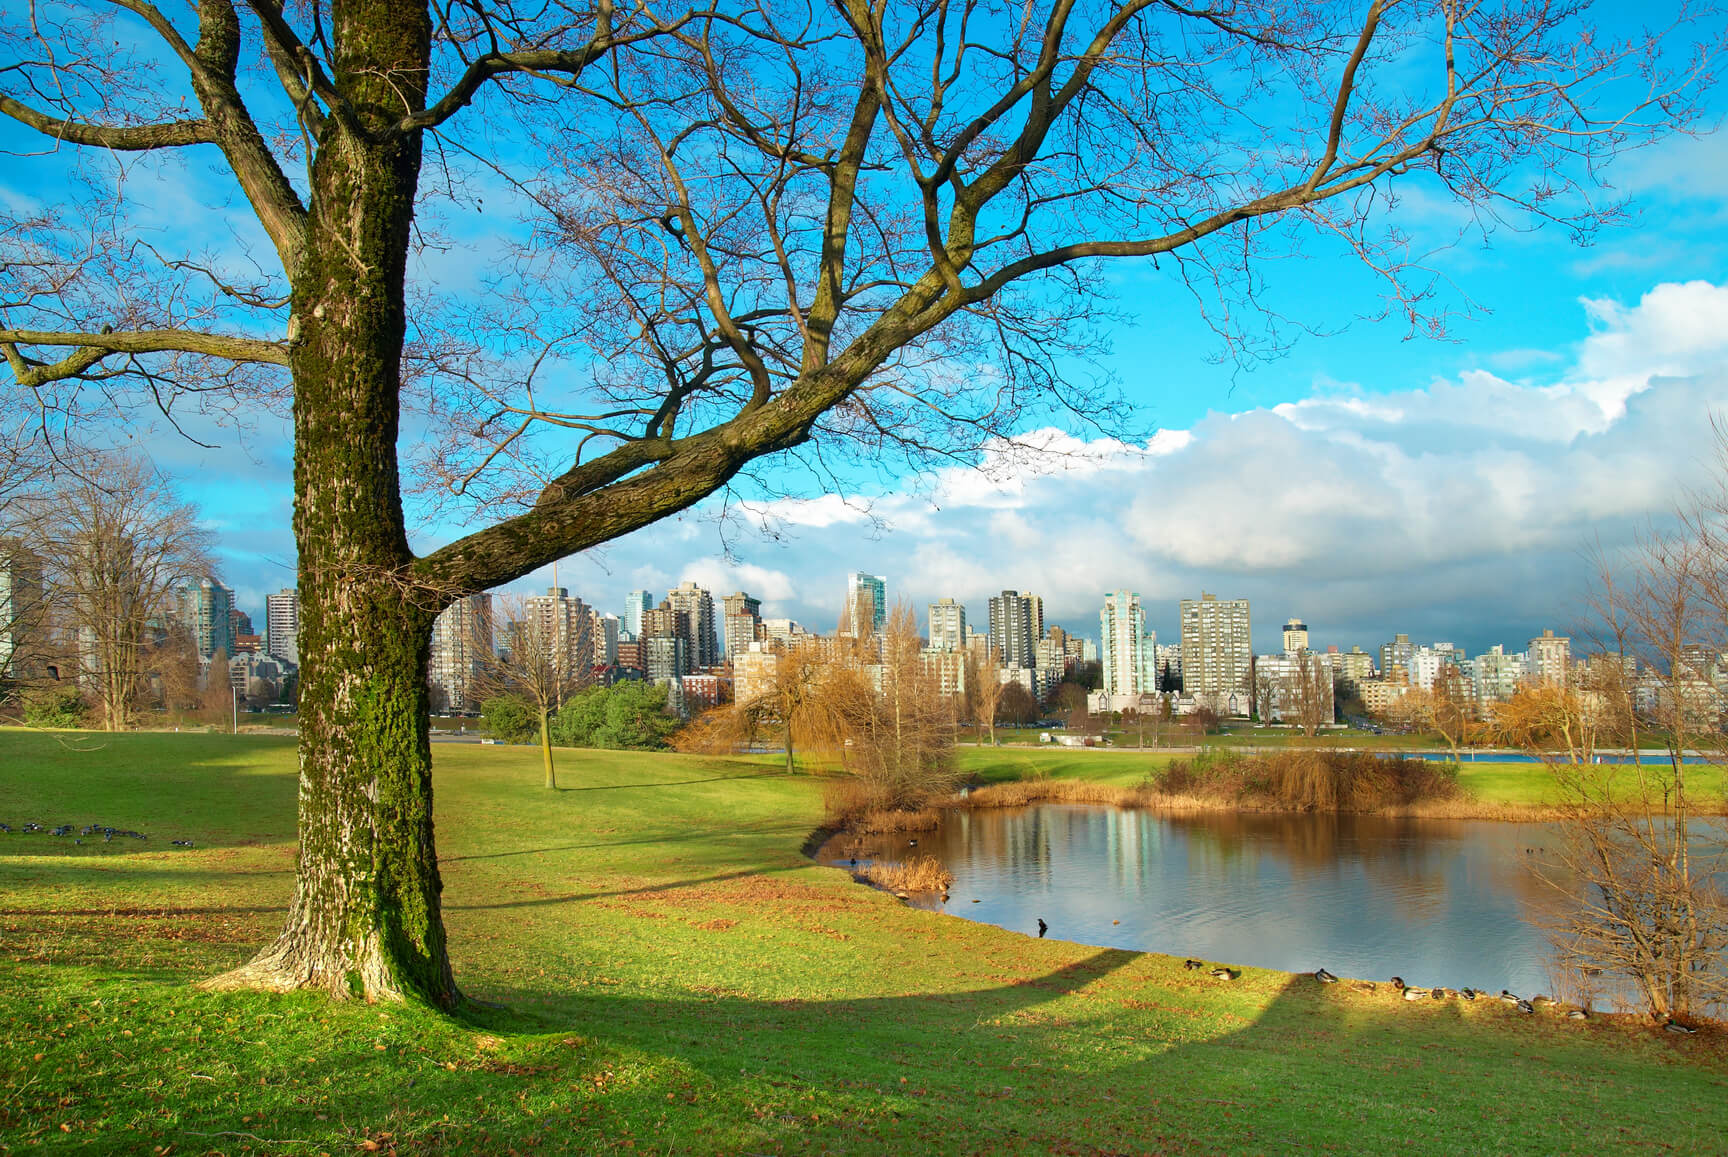 Non-stop from Paris, France to Vancouver, Canada for only €333 roundtrip (Nov-Dec dates)